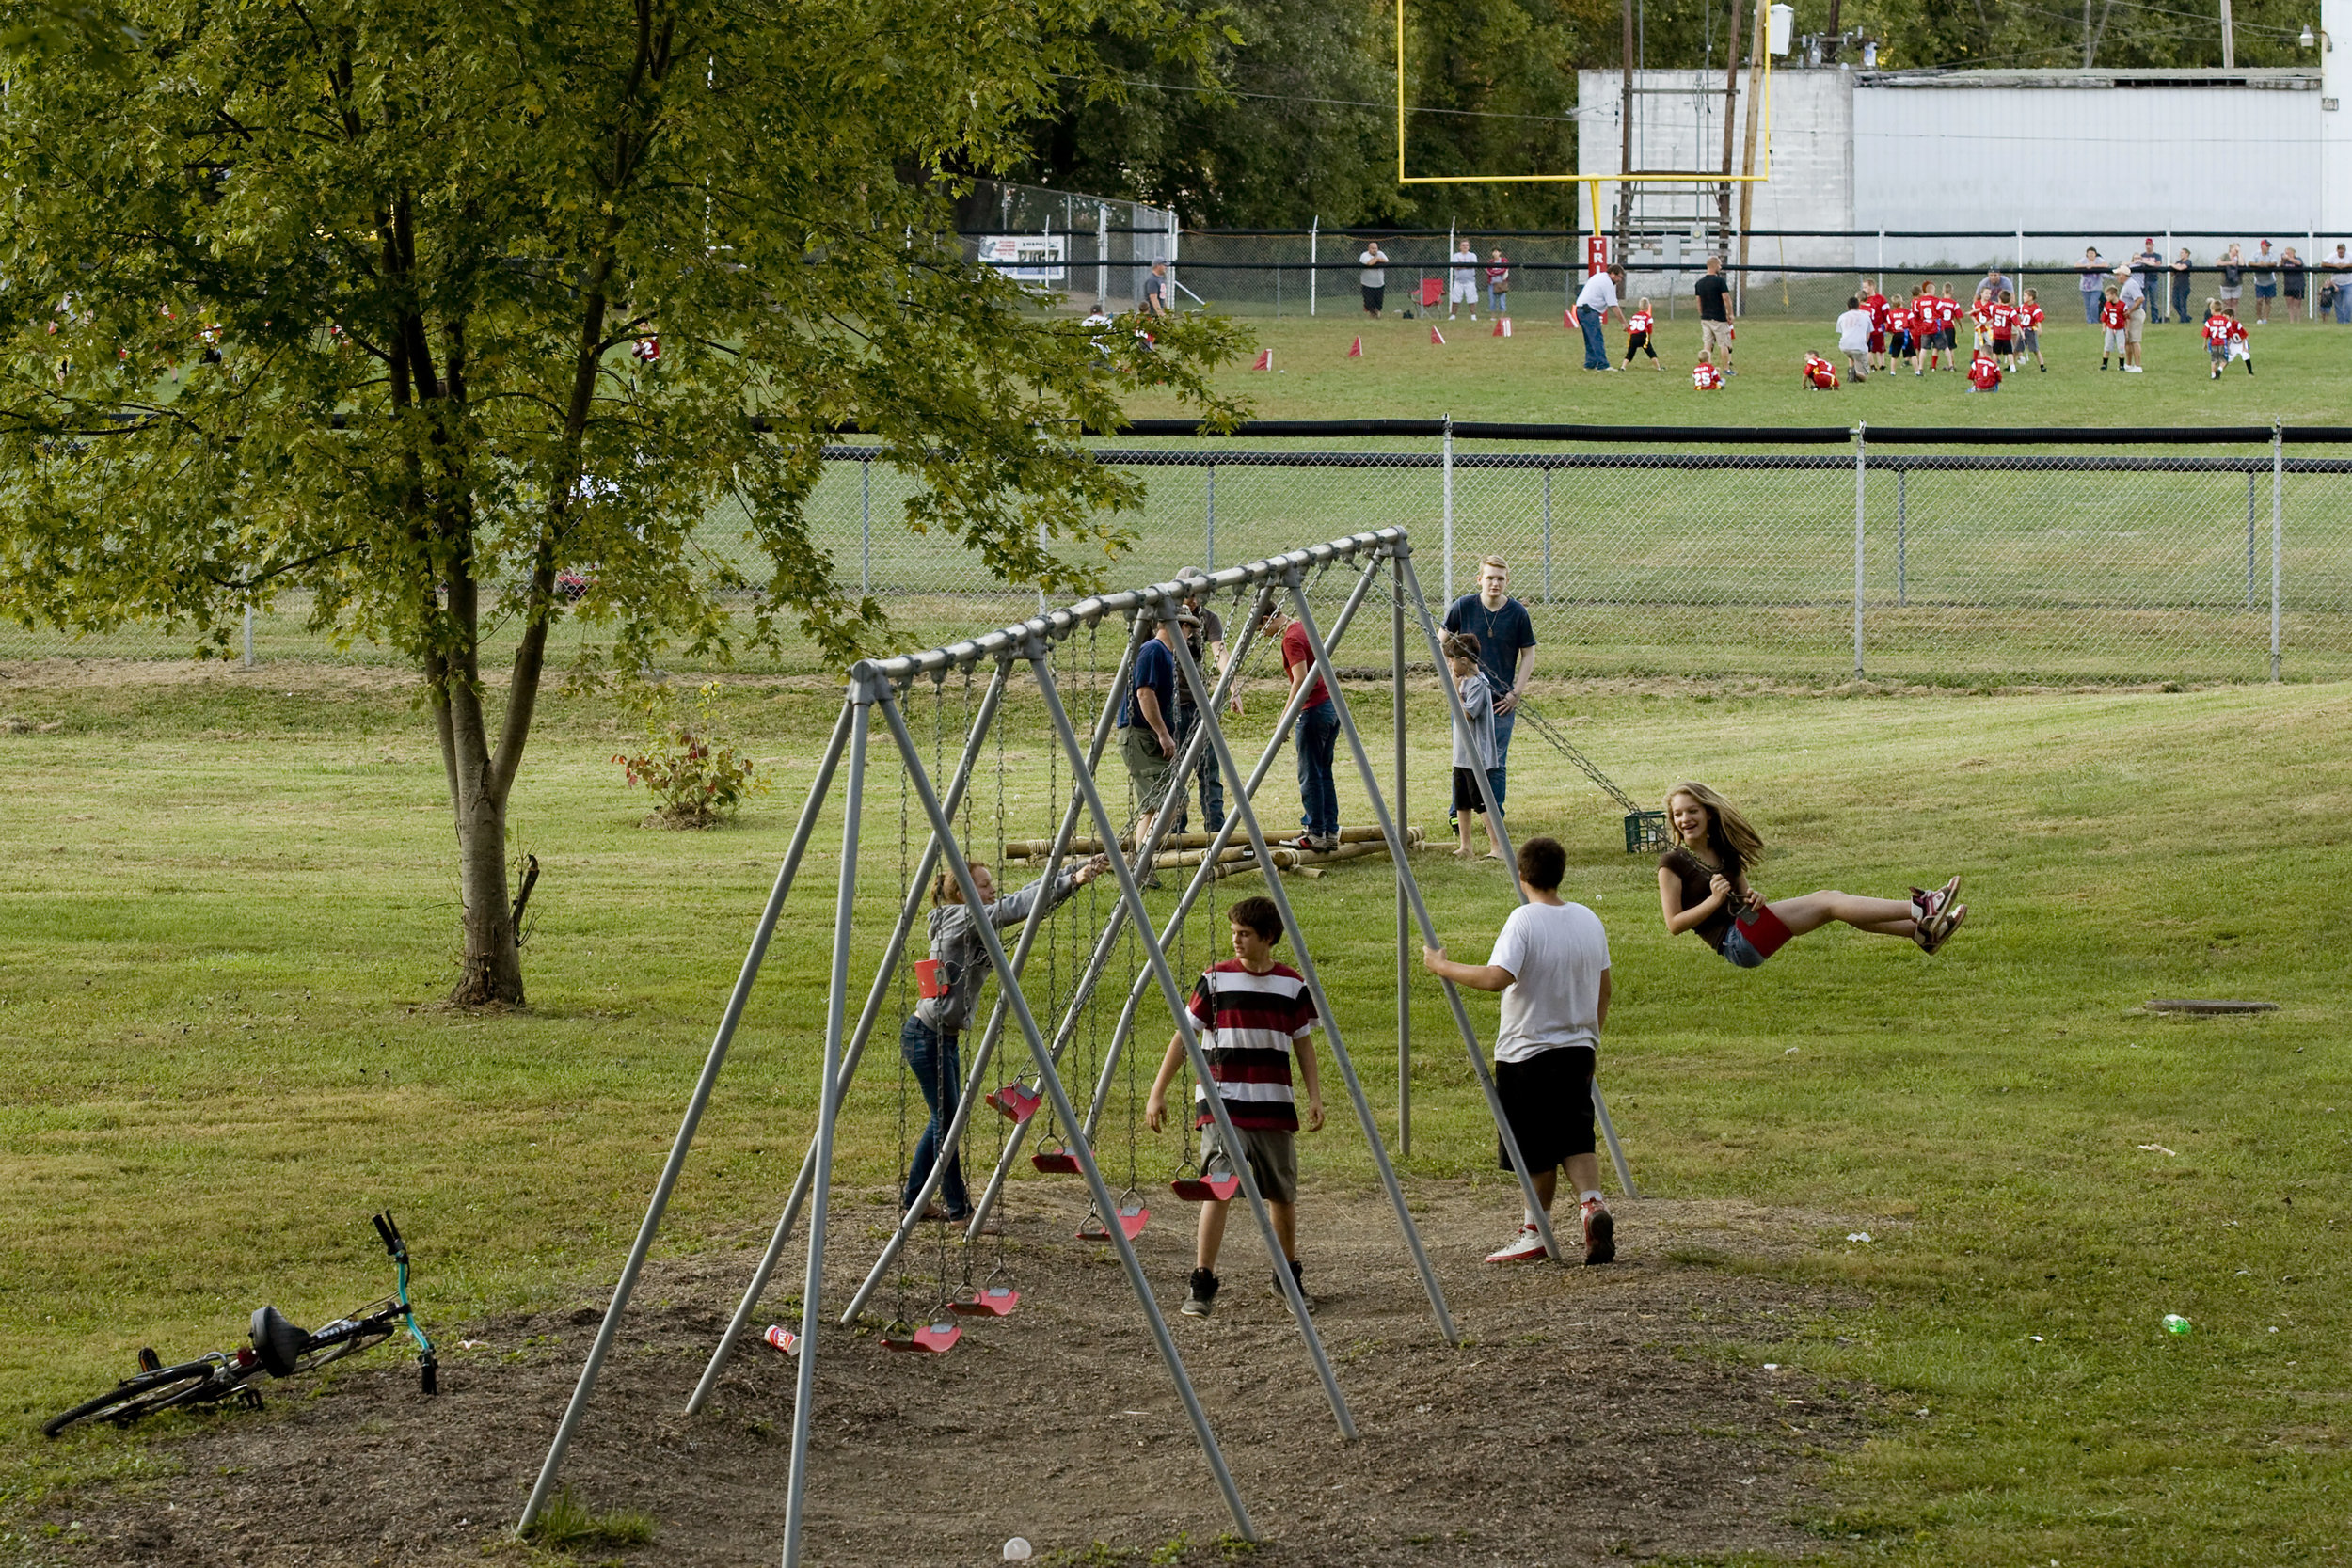 Children play on a swing set at Glouster Memorial Park next to Glouster Stadium in Glouster, Ohio, September 2014.